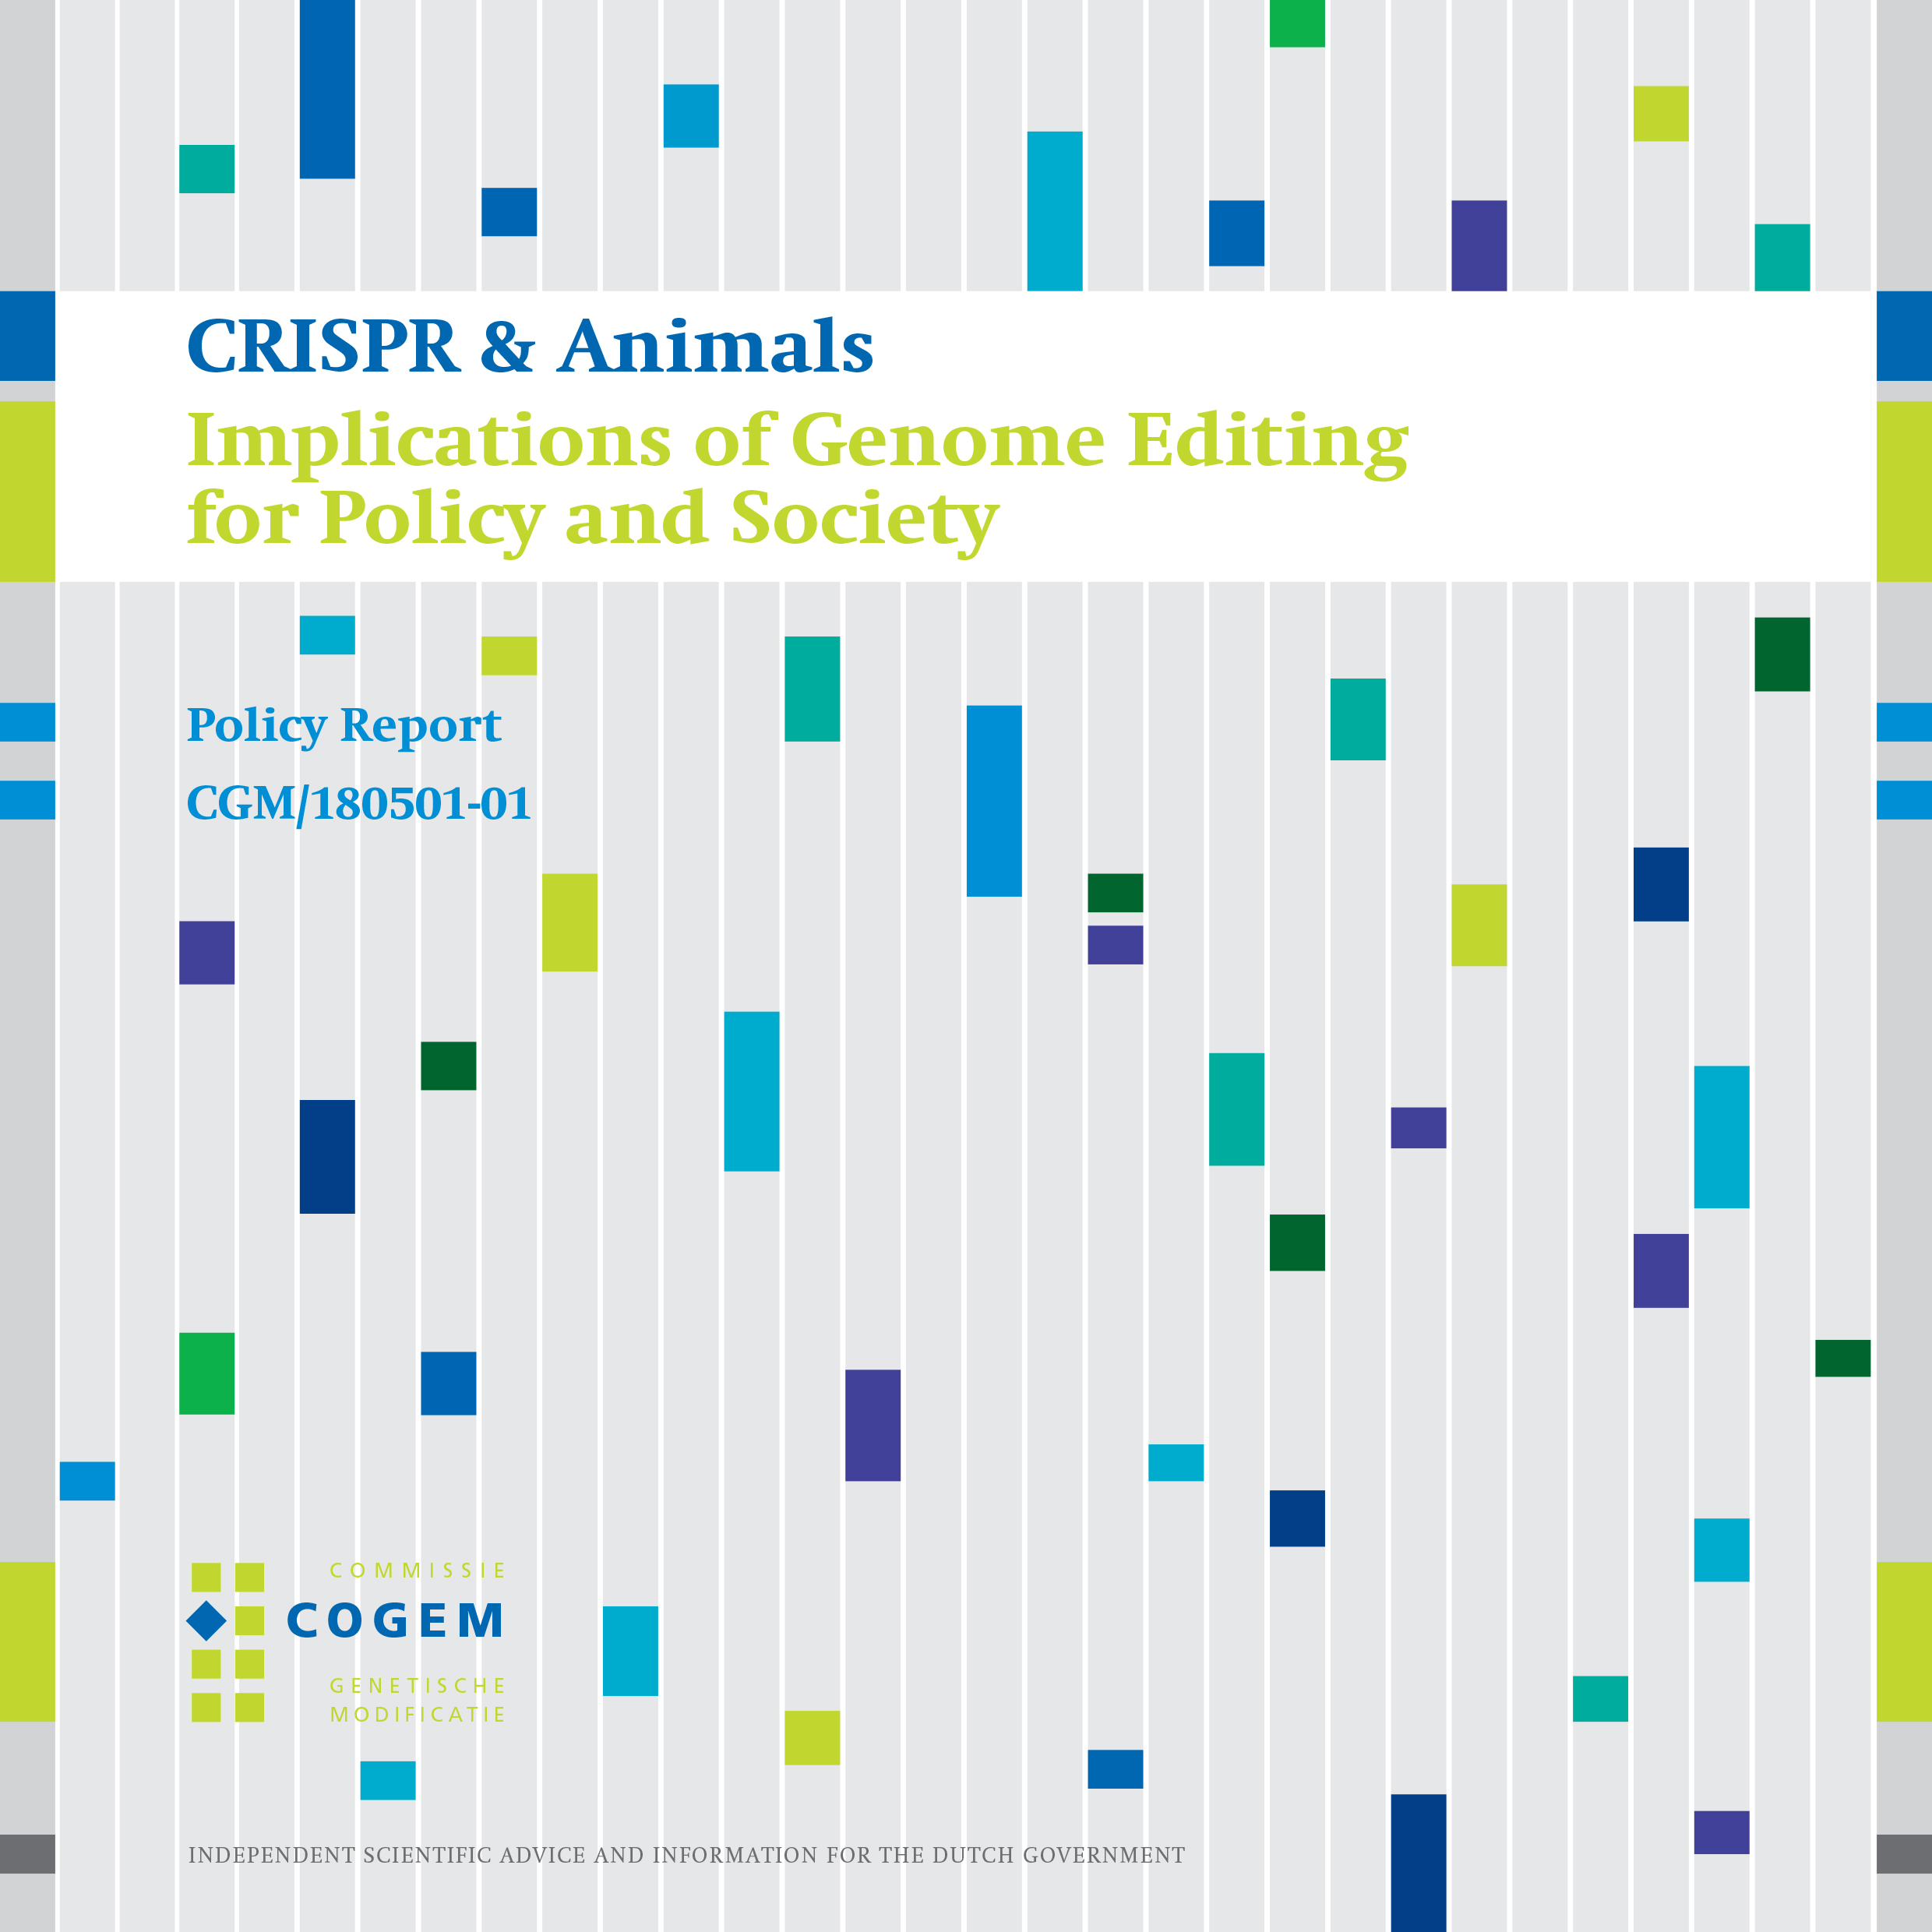 CRISPR & Animals: Implications of Genome Editing for Policy and Society